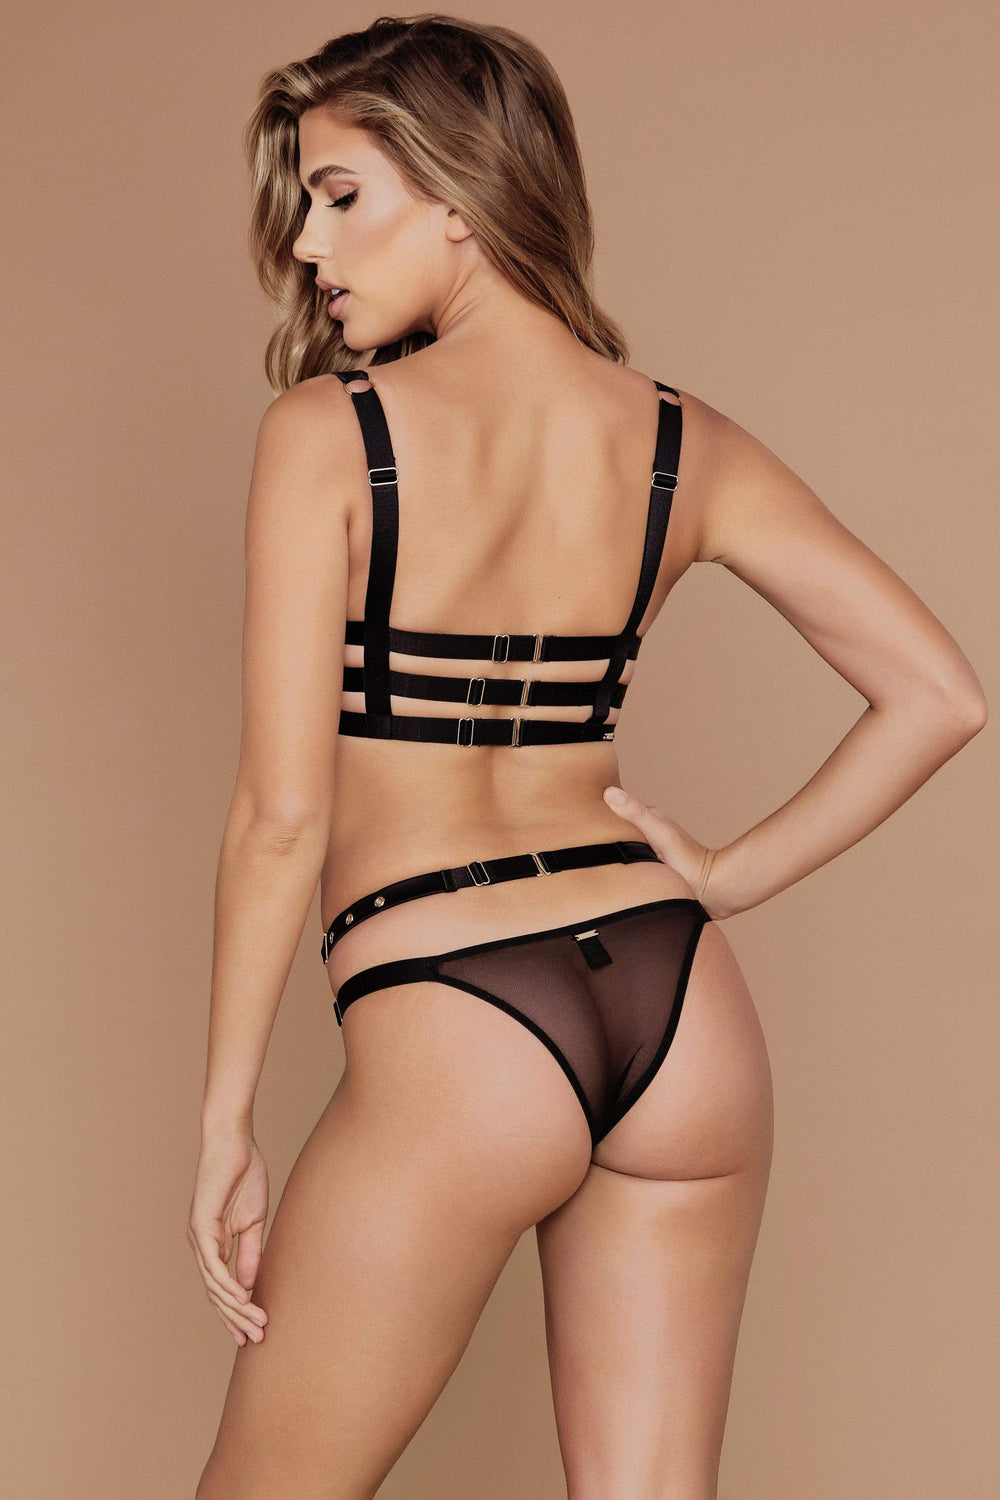 Alison Satin Buckle Brazilian Briefs - Black - MESHKI ?id=4077494042699